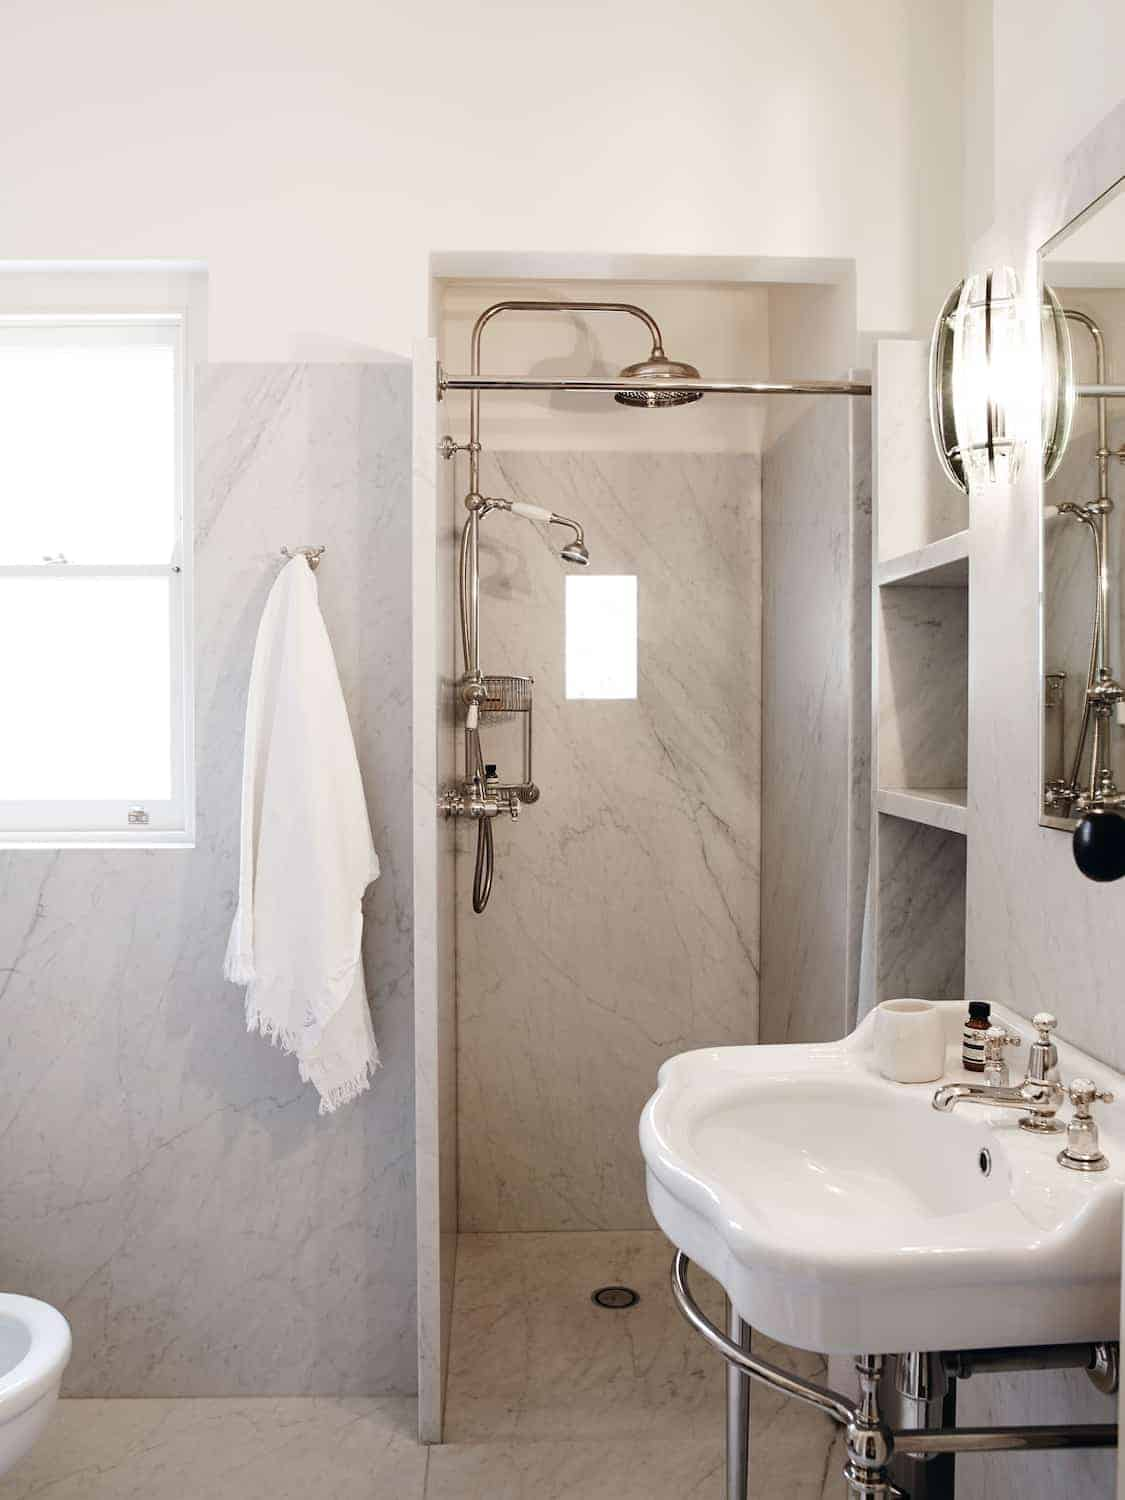 PROJECTS-GAELFORCE-BASINS-AND-WASHSTANDS-SILVER-NICKEL-EMPRESS-BASIN-THERMO-GRAND-EXPOSED-SHOWER